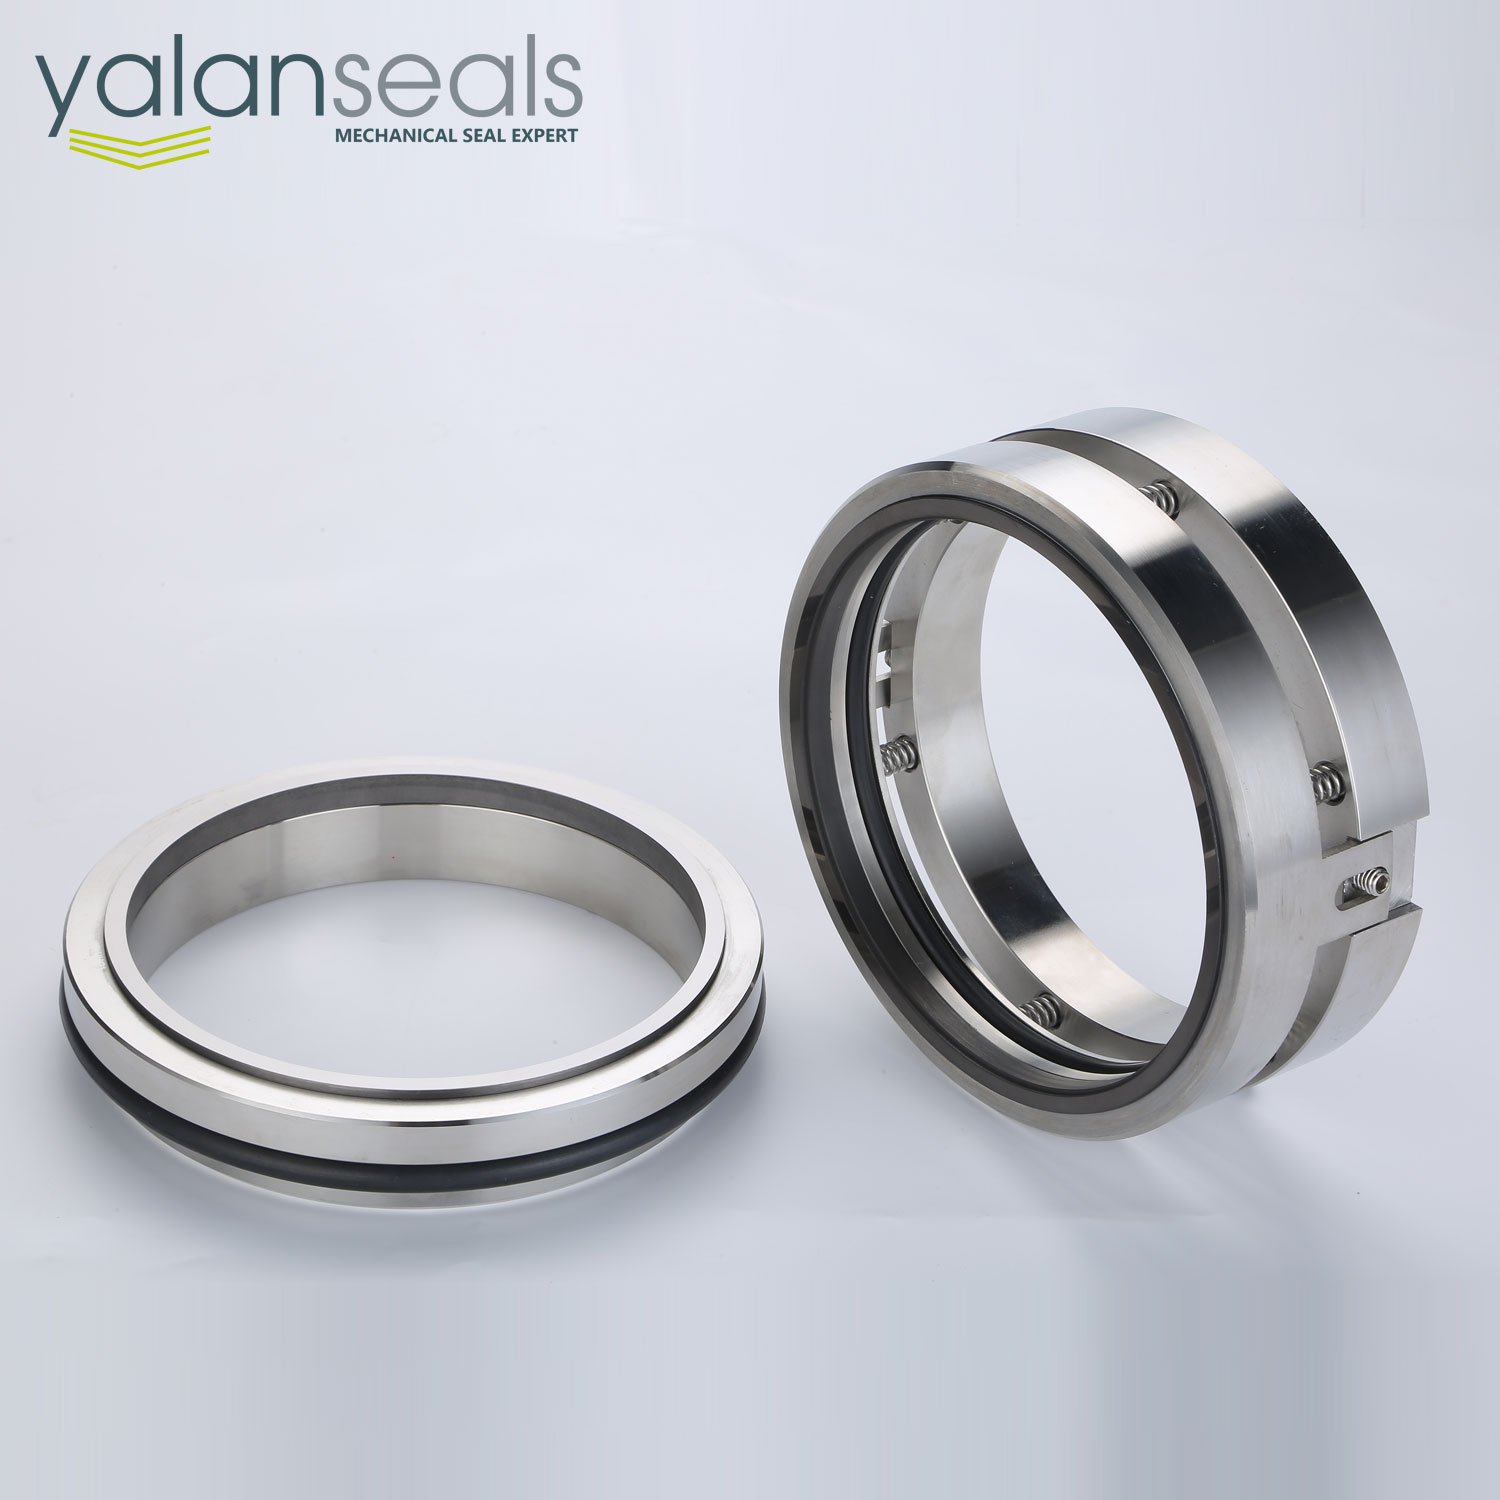 U46 Mechanical Seal for Reaction Kettles, Mixers, Paper Machine, Slurry Pumps and Axially Splitpumps